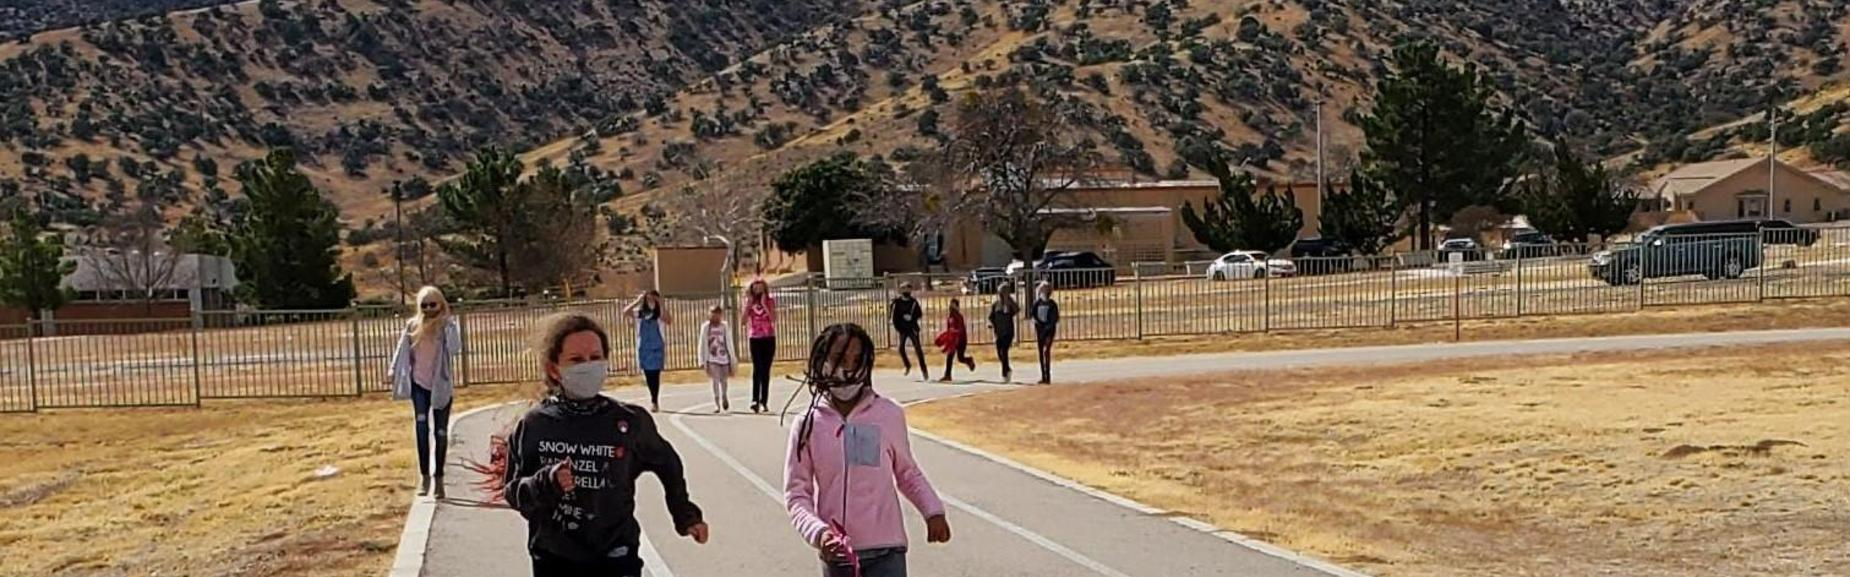 students out on the track